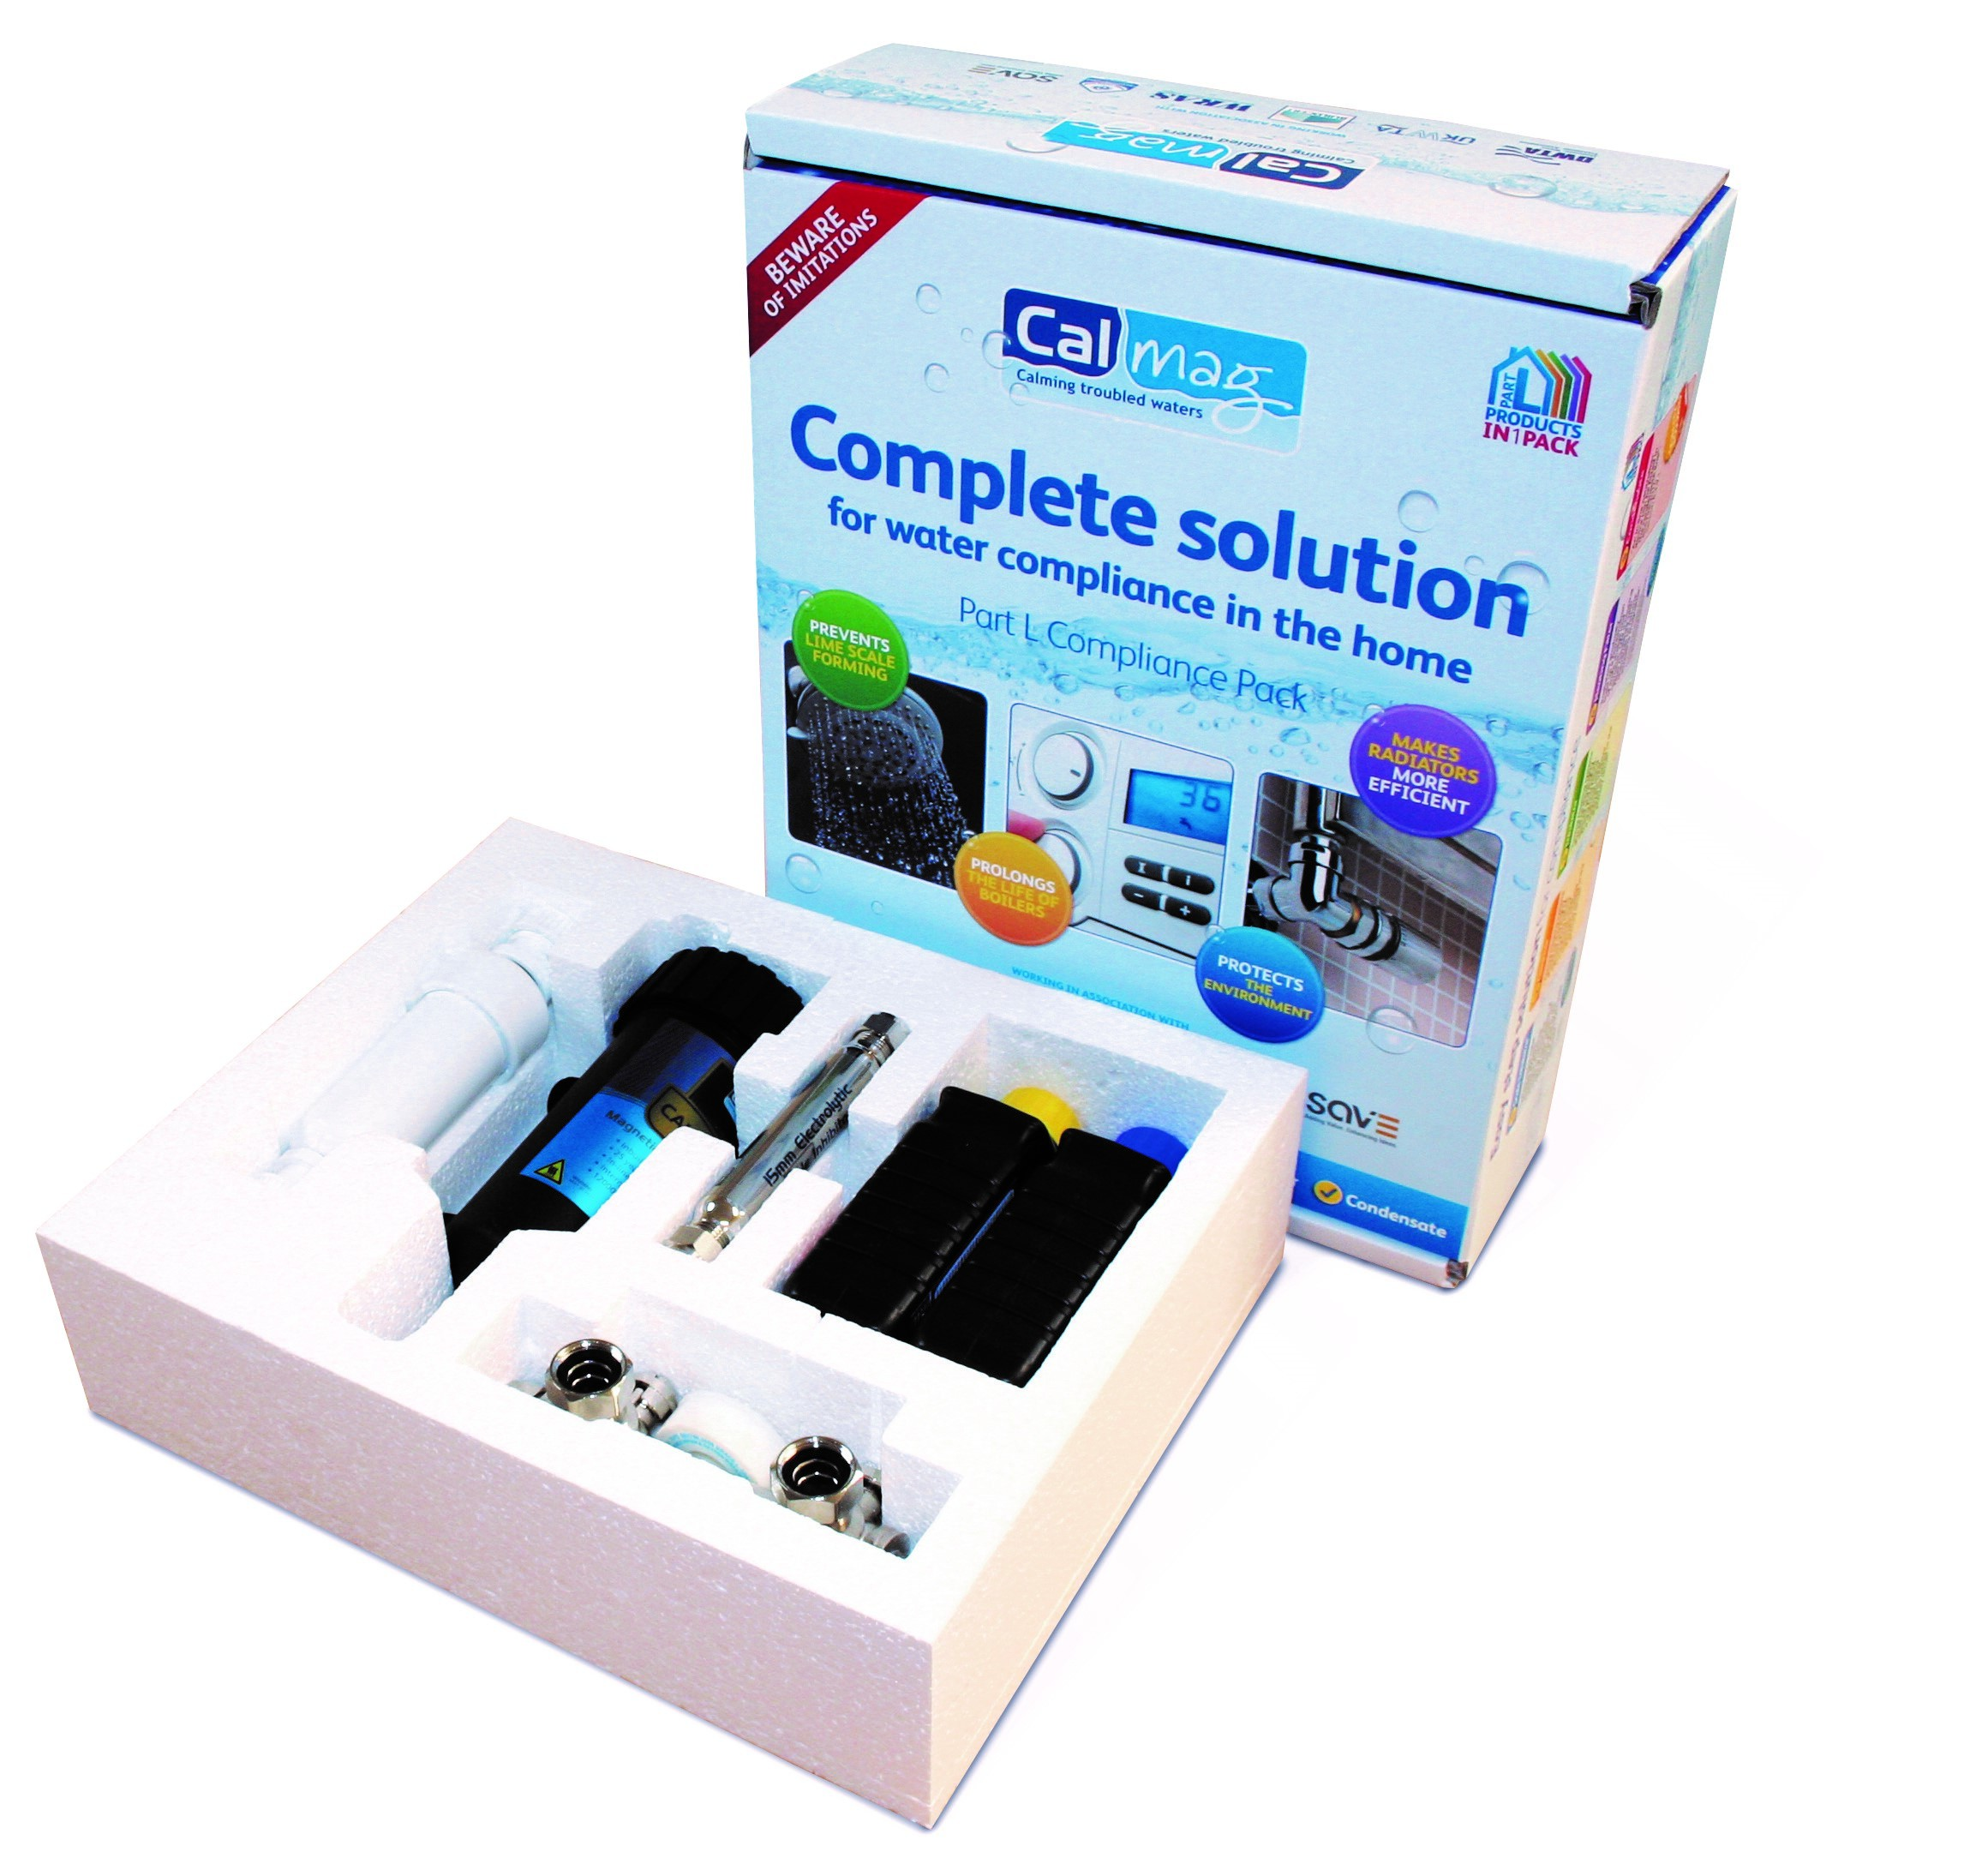 CALMAG COMPLETE SOLUTIONS PACK